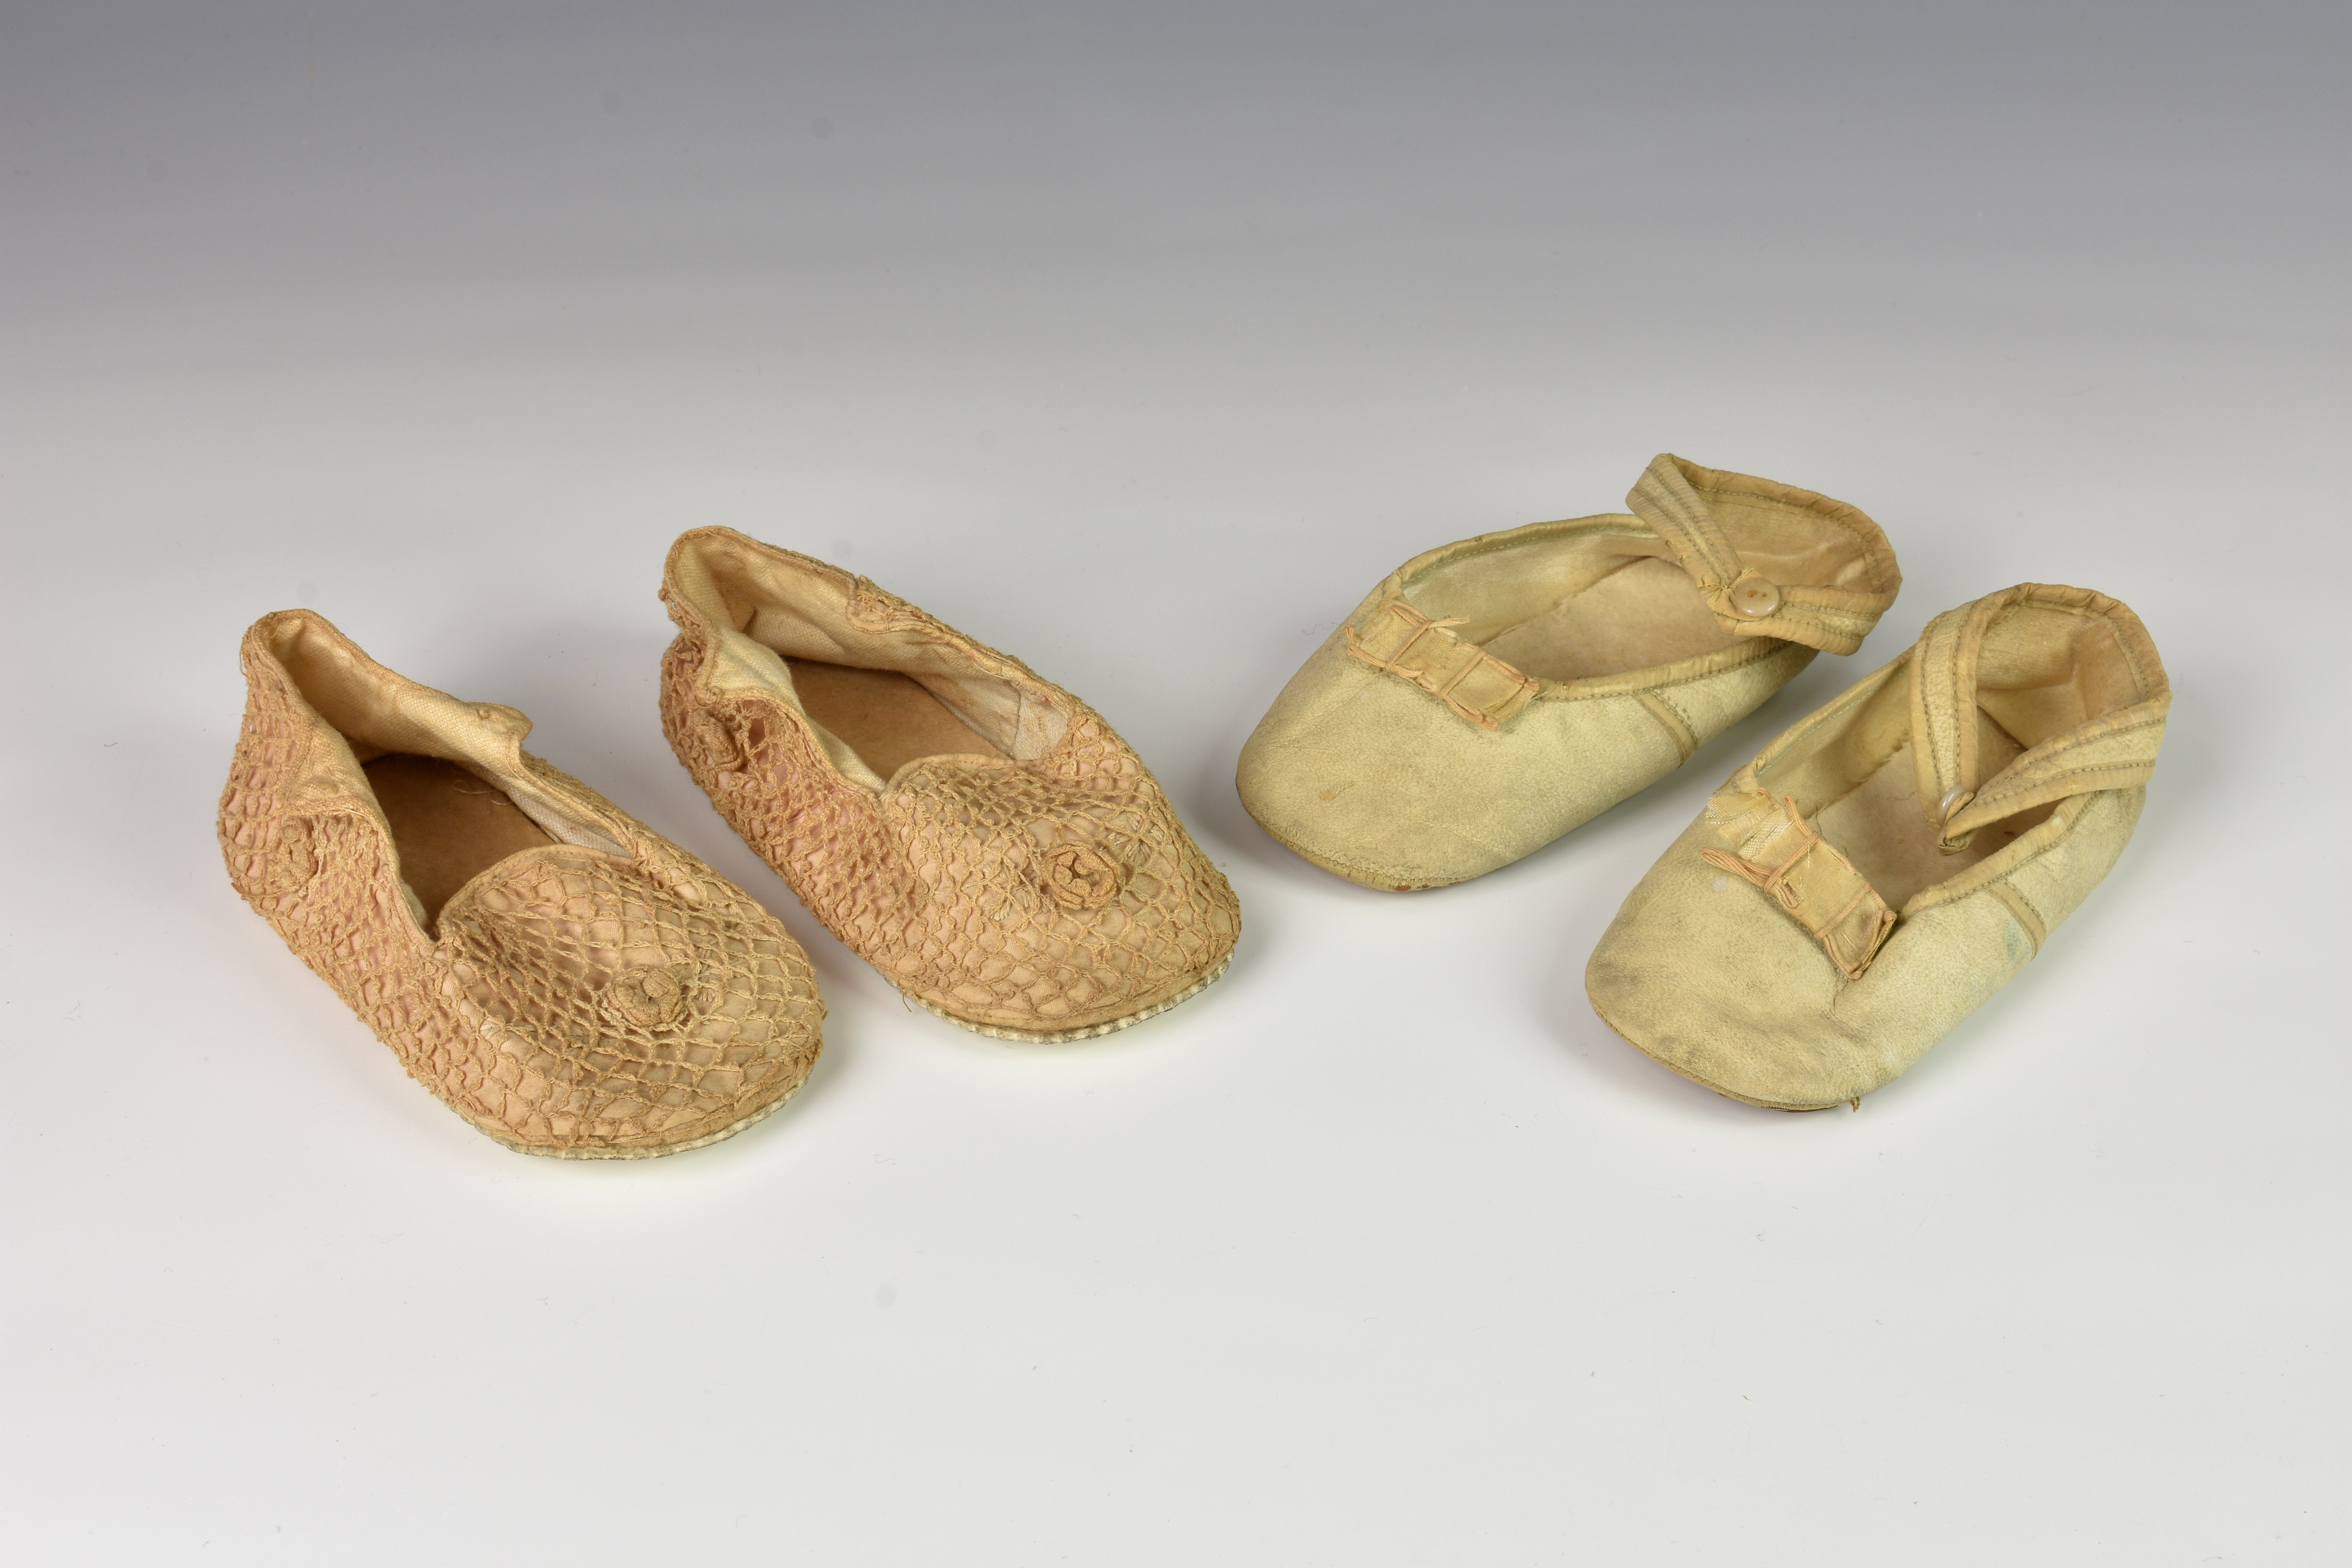 Lot 334 - Two pairs of Victorian dolls shoes, comprising of a leather pair with button down side flaps and a